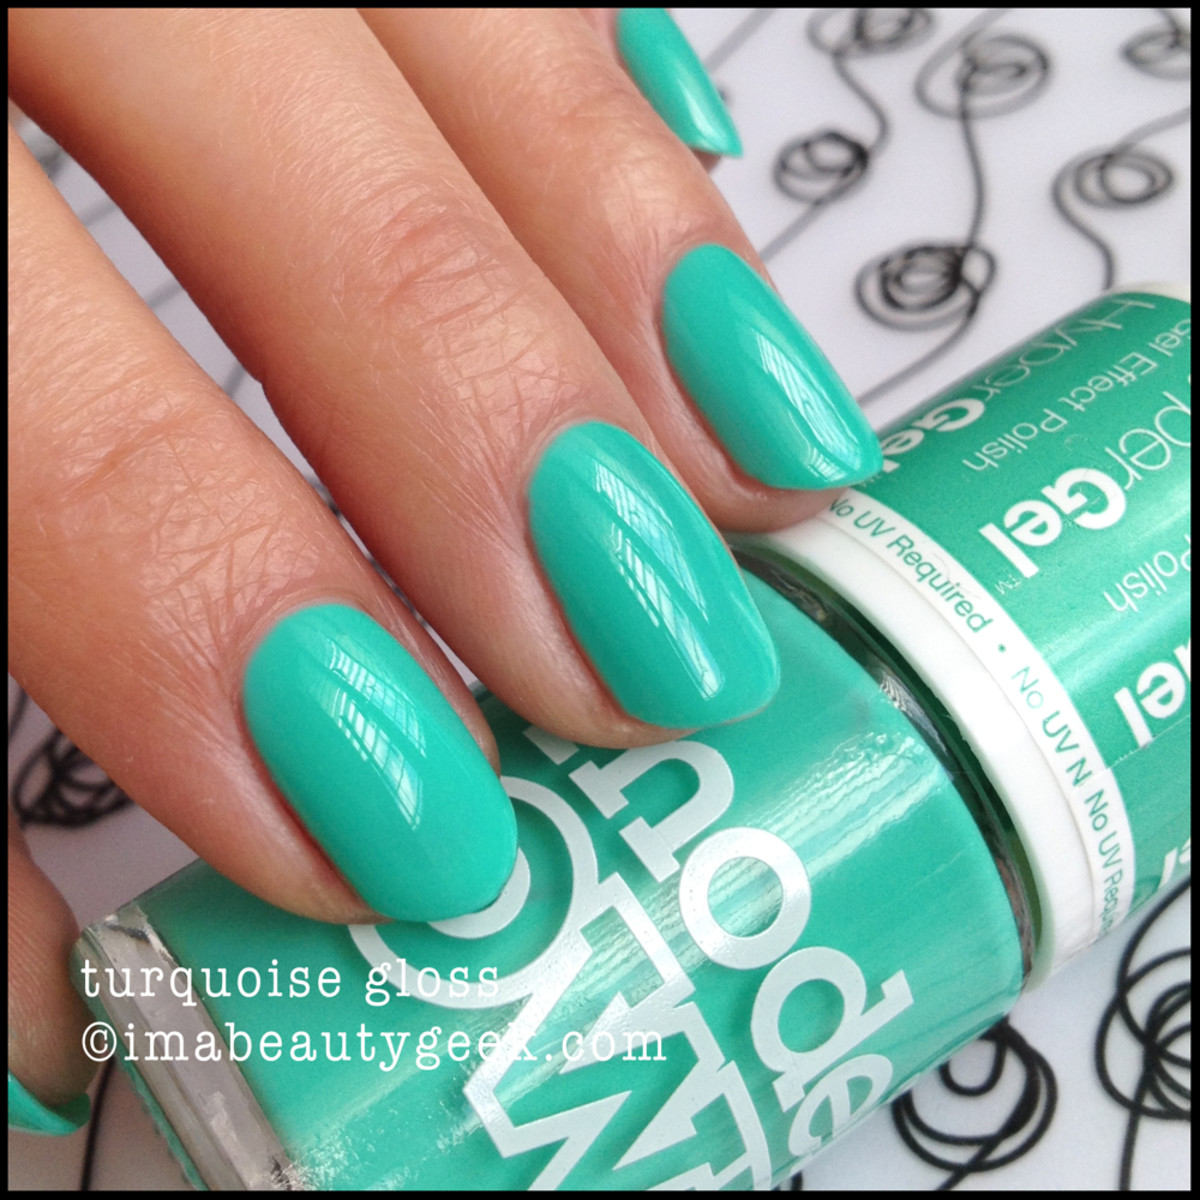 Models Own Polish Turquoise Gloss imabeautygeek